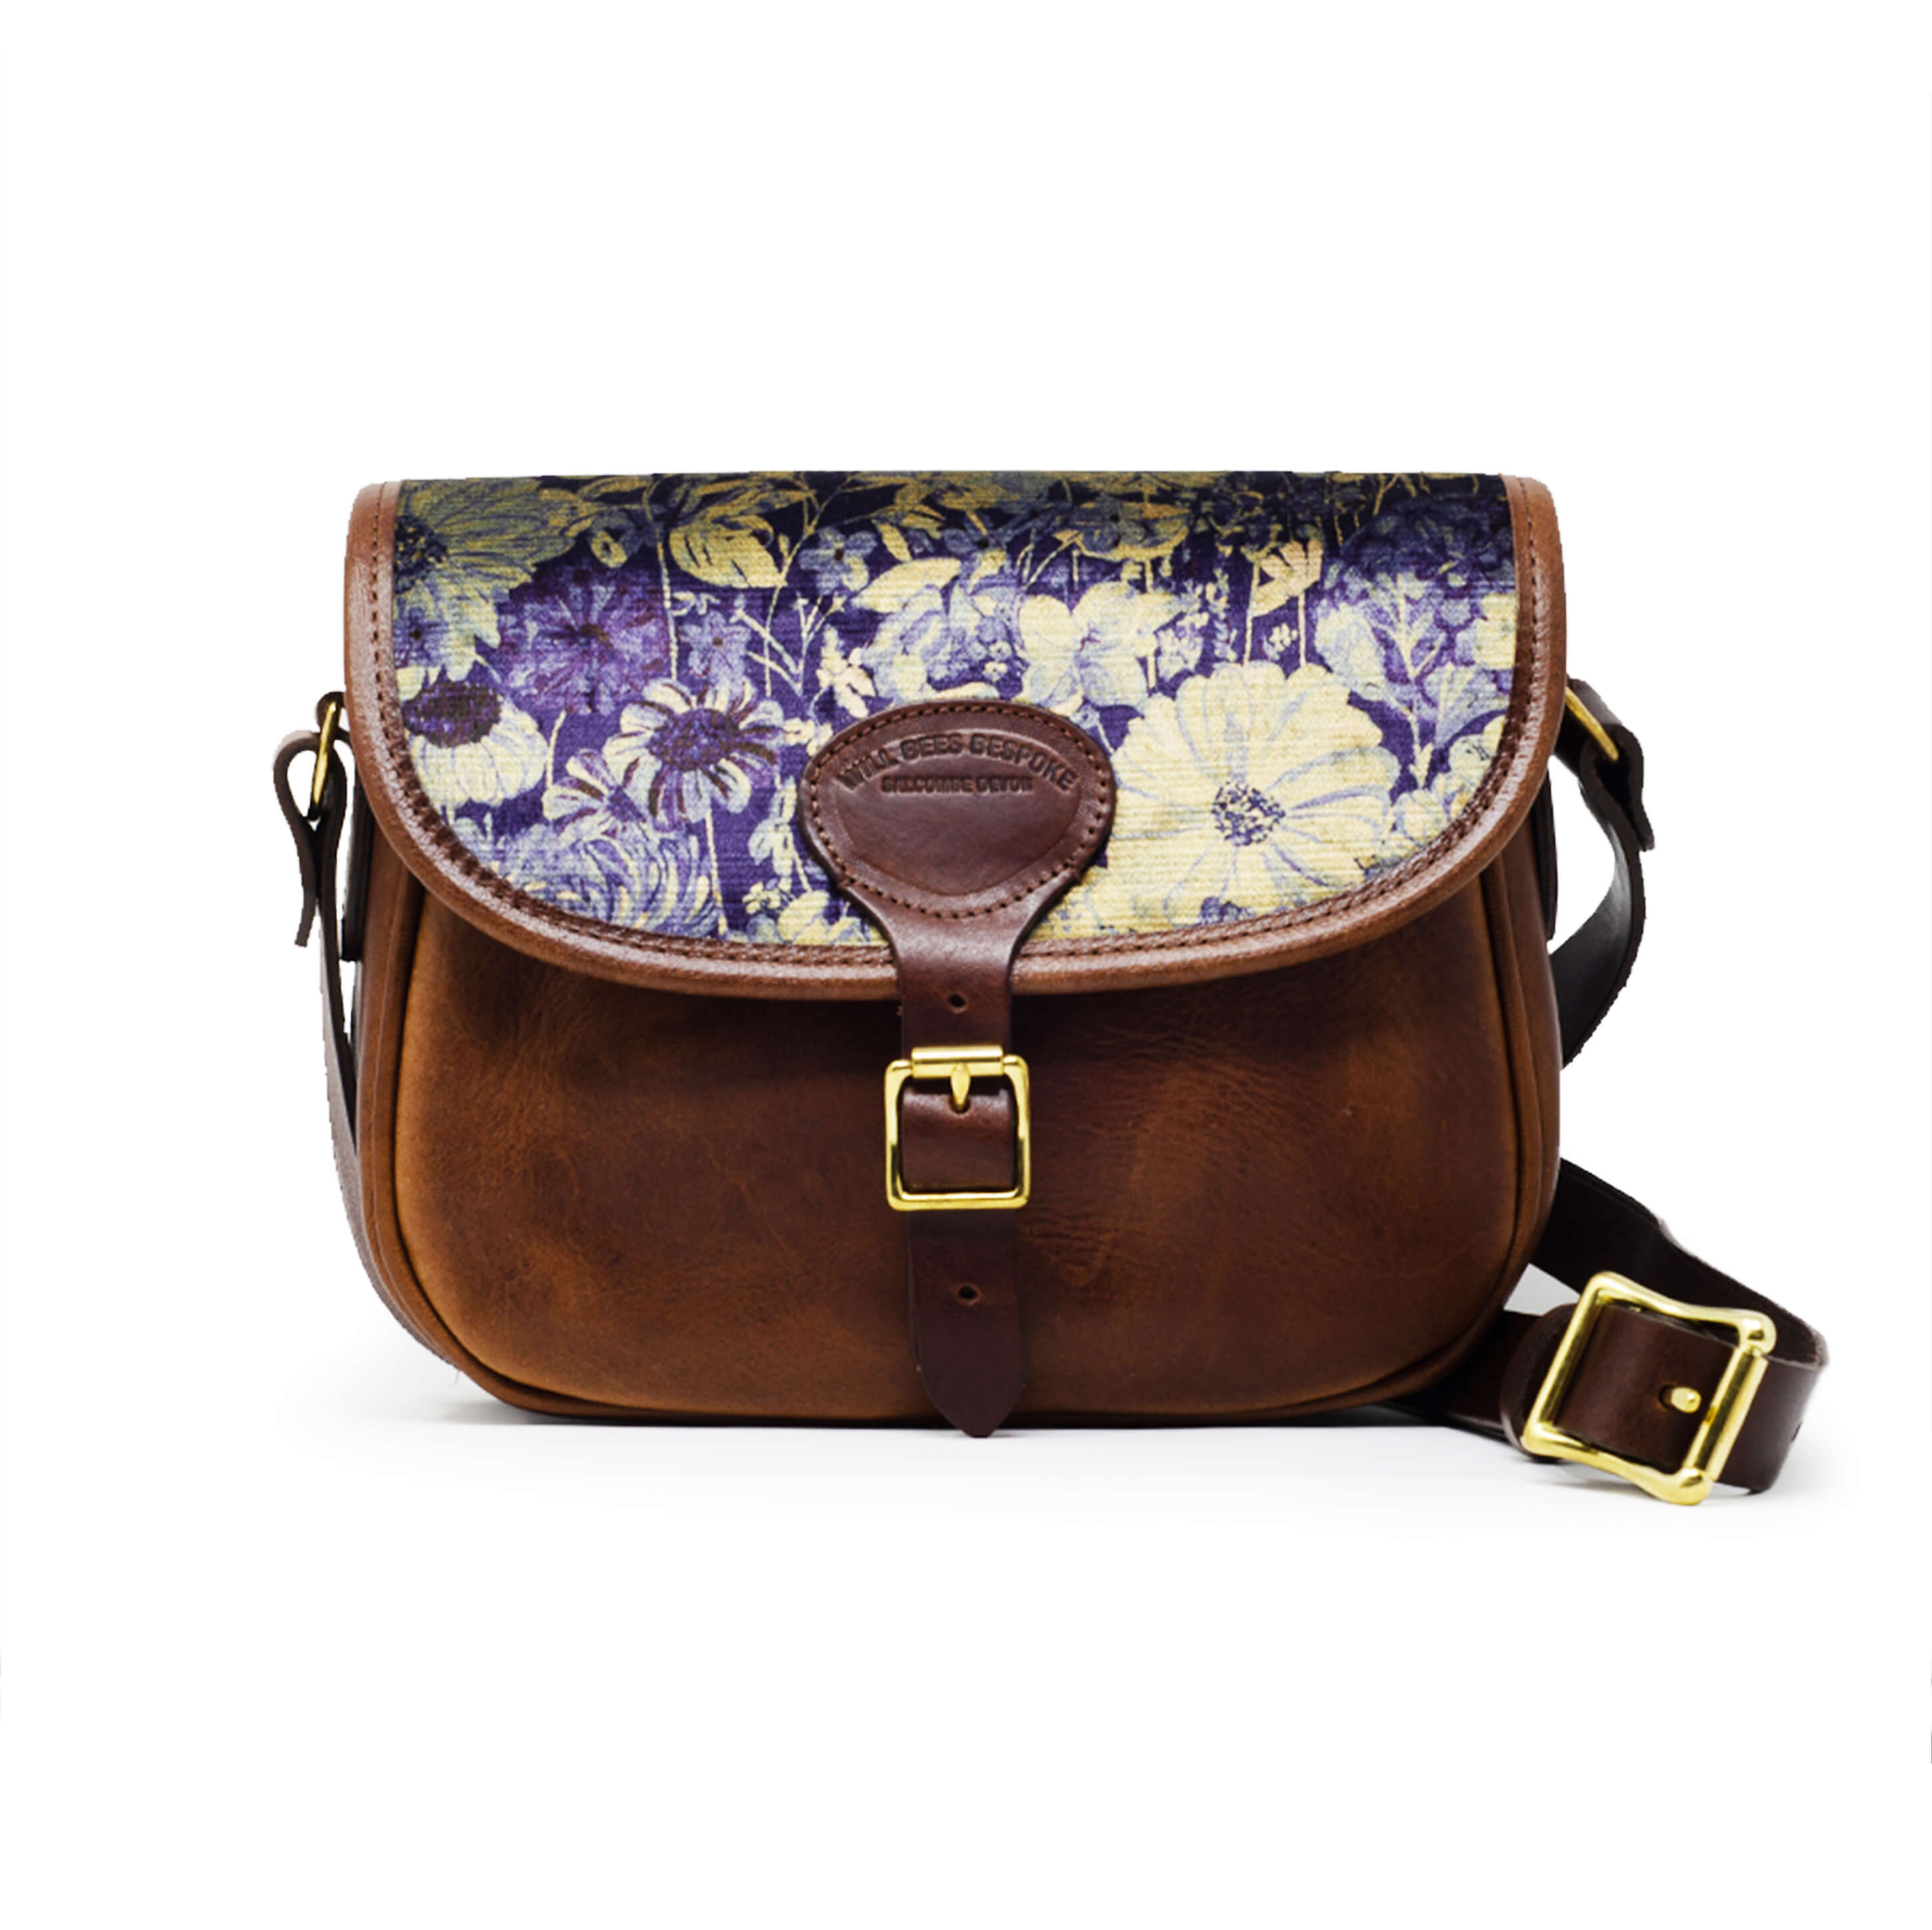 Rosalind Saddle Bag - Botanical Garden in Blue Sky - Will Bees Bespoke